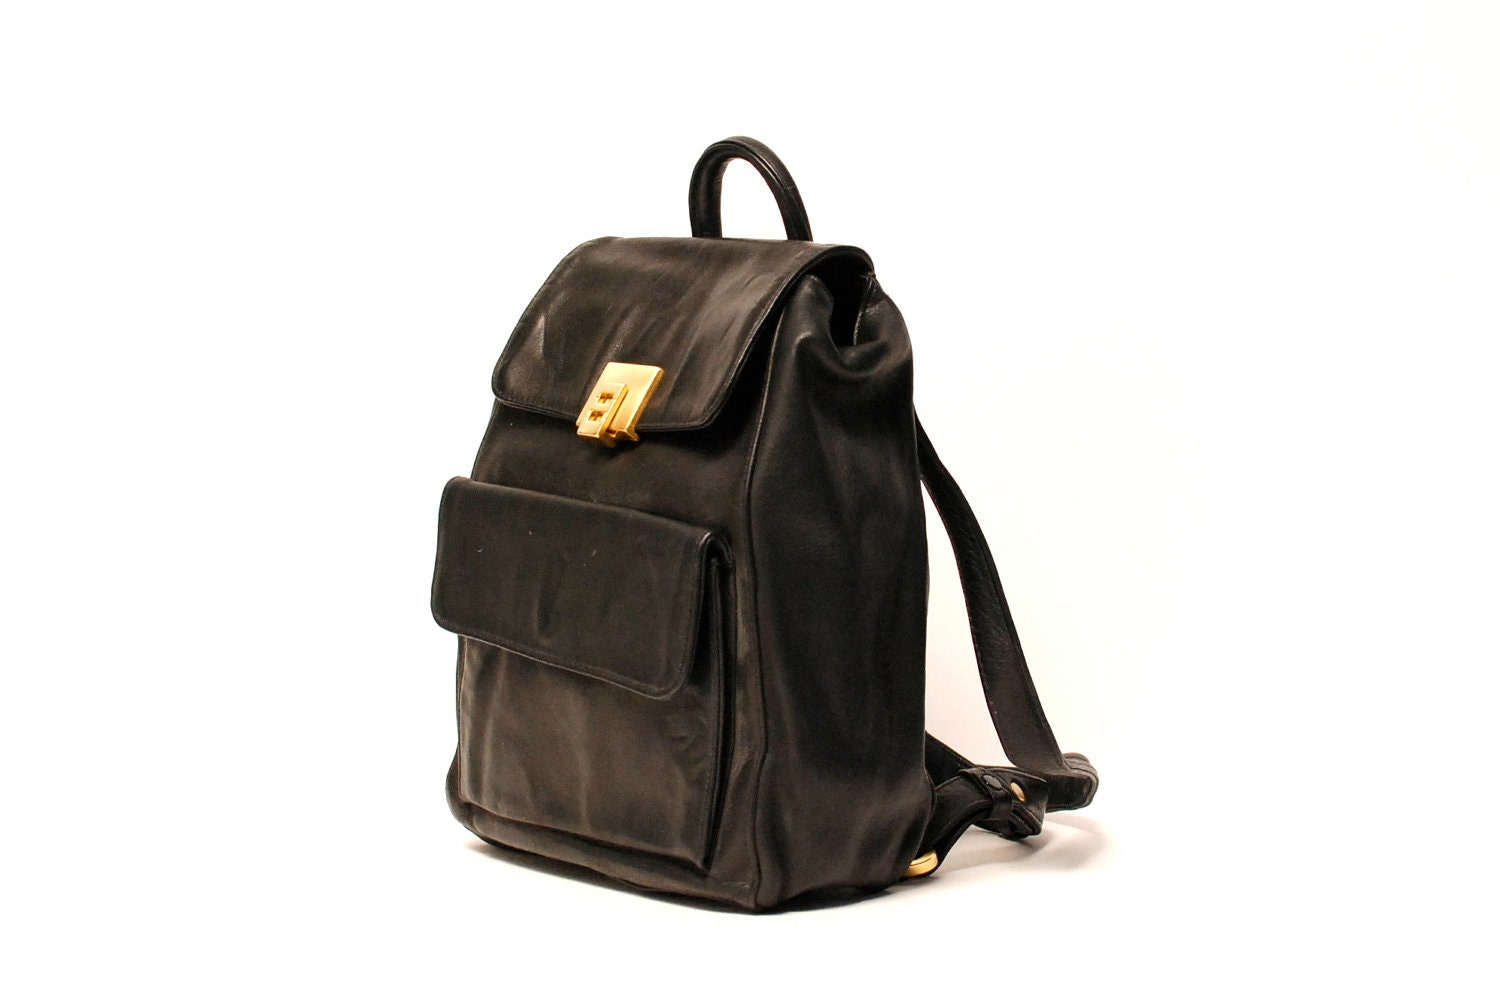 Free shipping on backpacks at sgmgqhay.gq Shop Herschel, Fjallraven and more. Totally free shipping and returns.